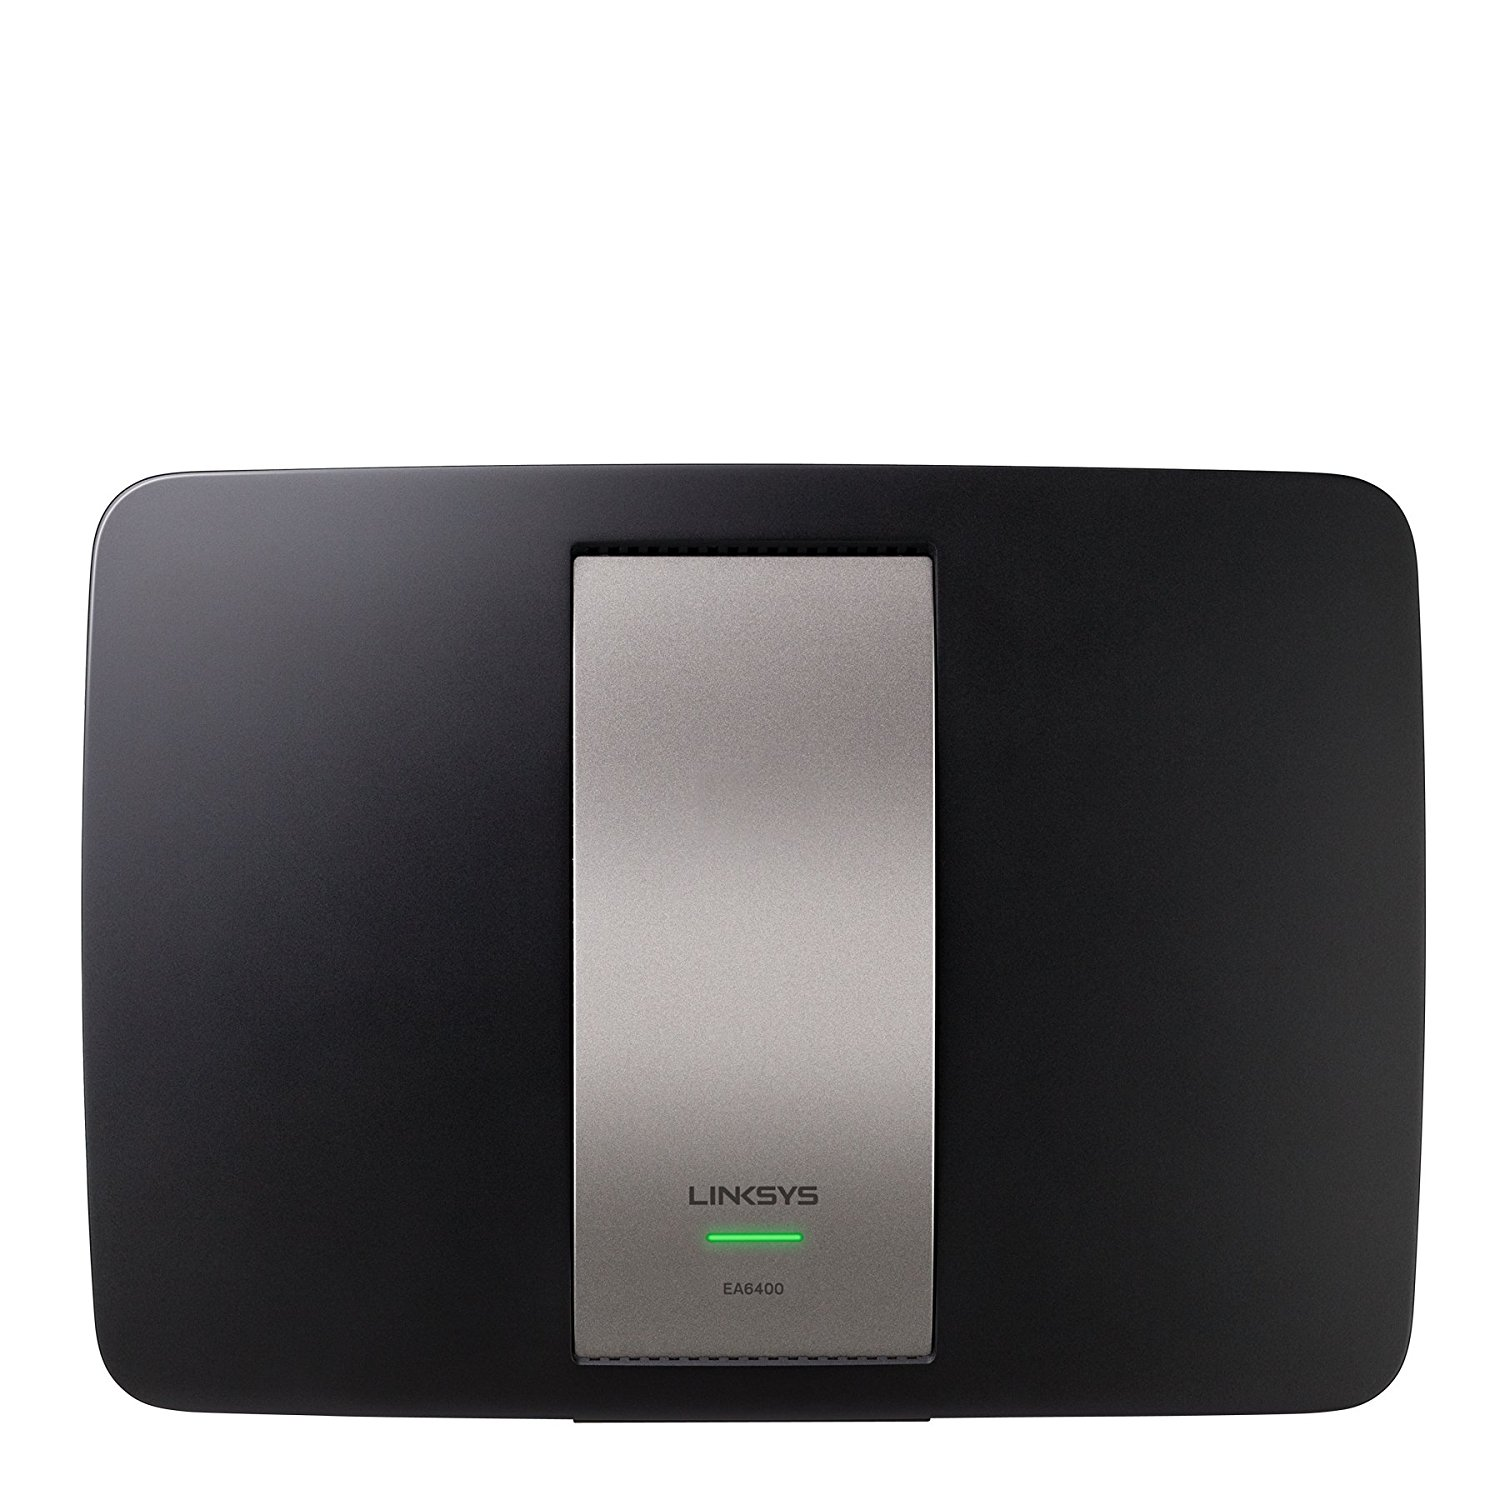 Linksys EA6400 Smart Wi-Fi Router - Dual Band AC 1600 Vid...